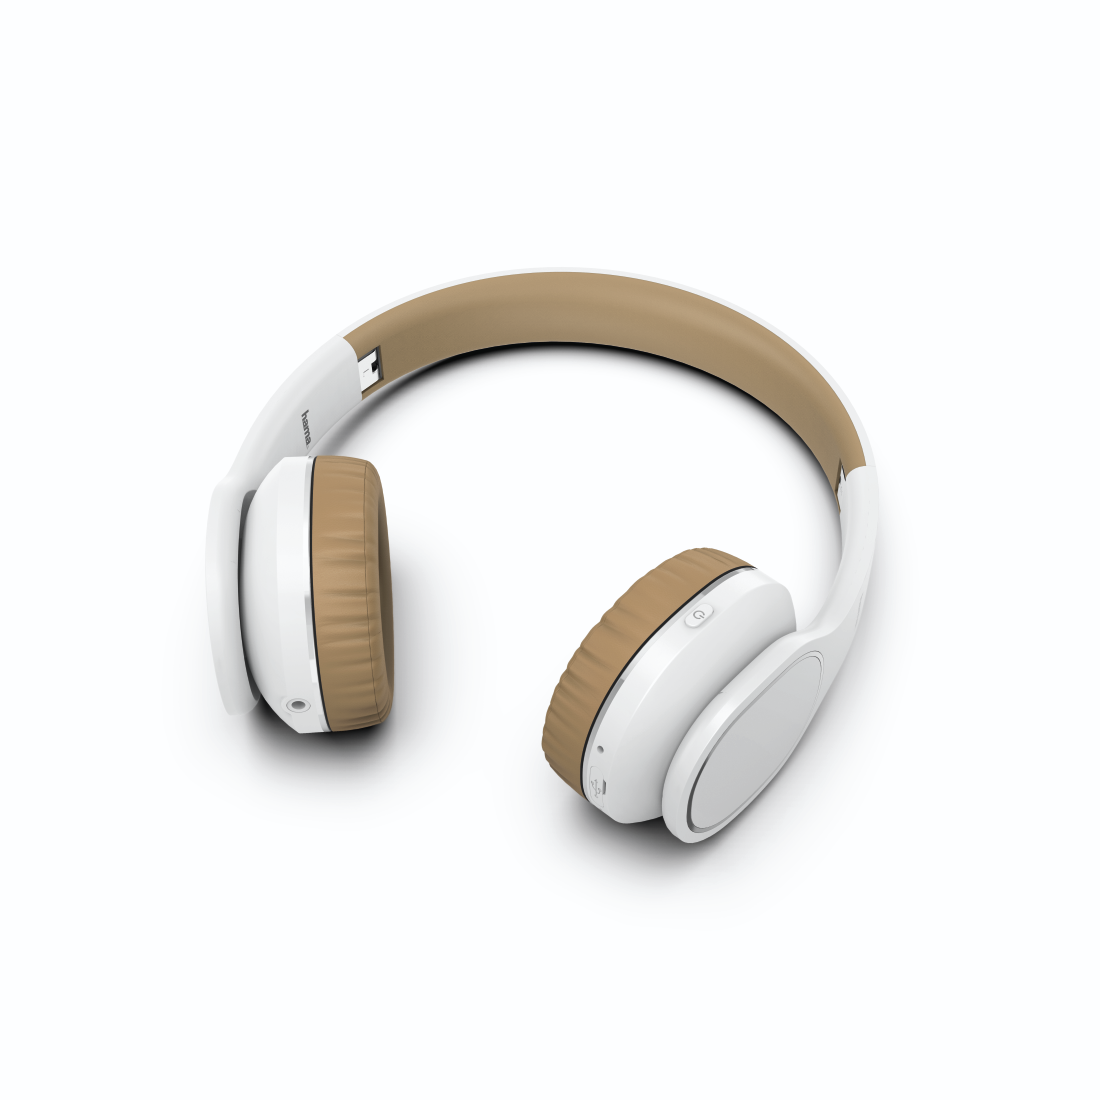 "abx2 High-Res Image 2 - Hama, Casque Bluetooth® ""Touch"", supra-aur., micro., comm. tact., blc/beige"